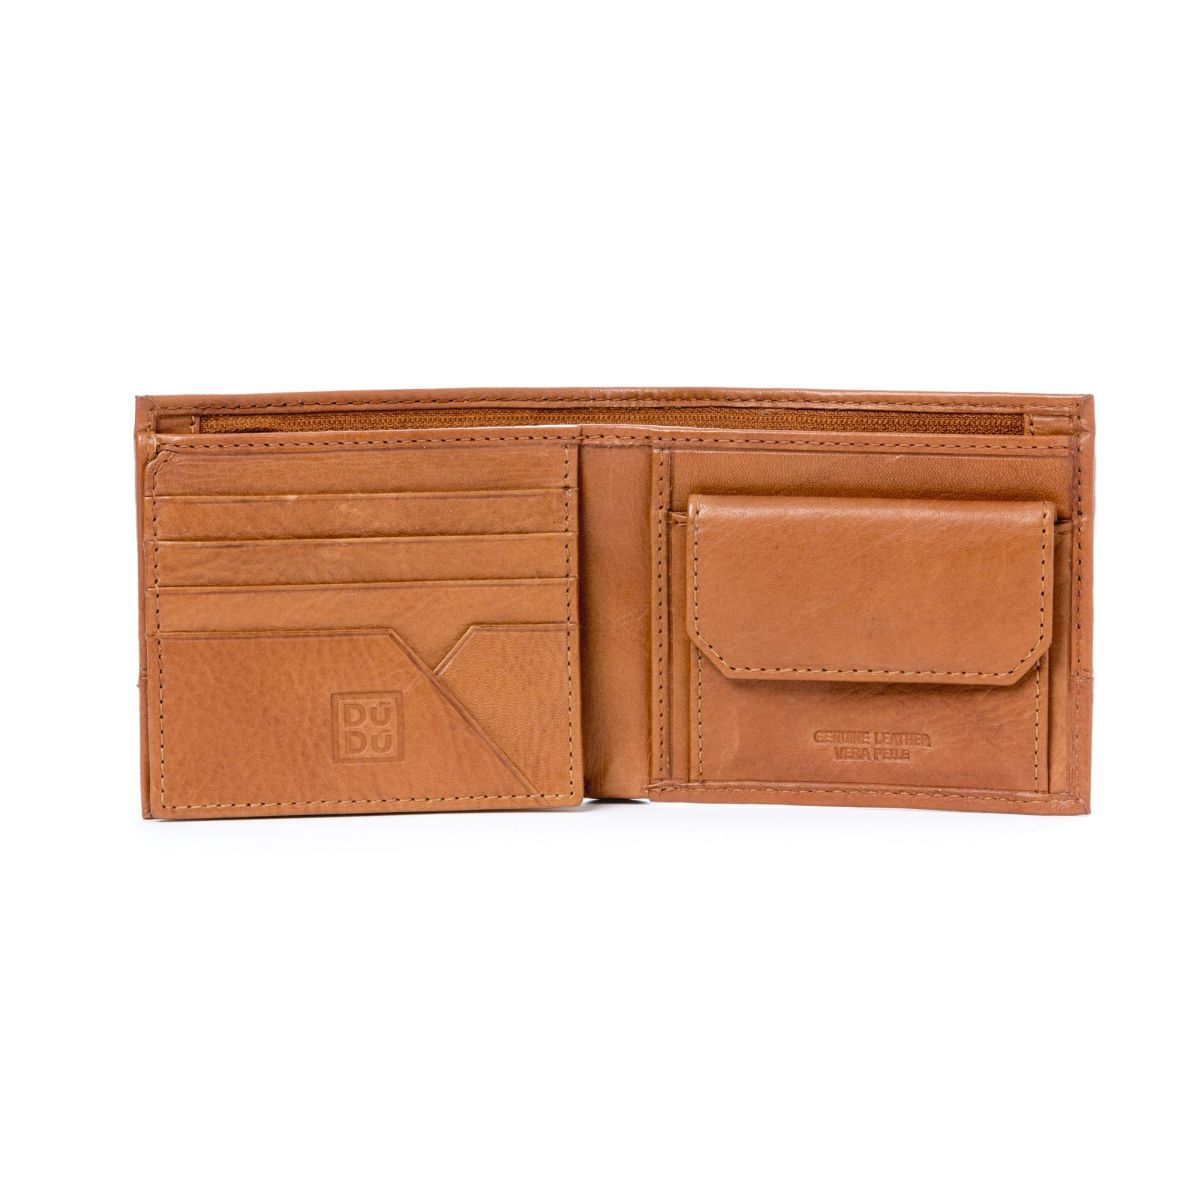 Unique Leather Wallet With Coin Purse - Light Brown